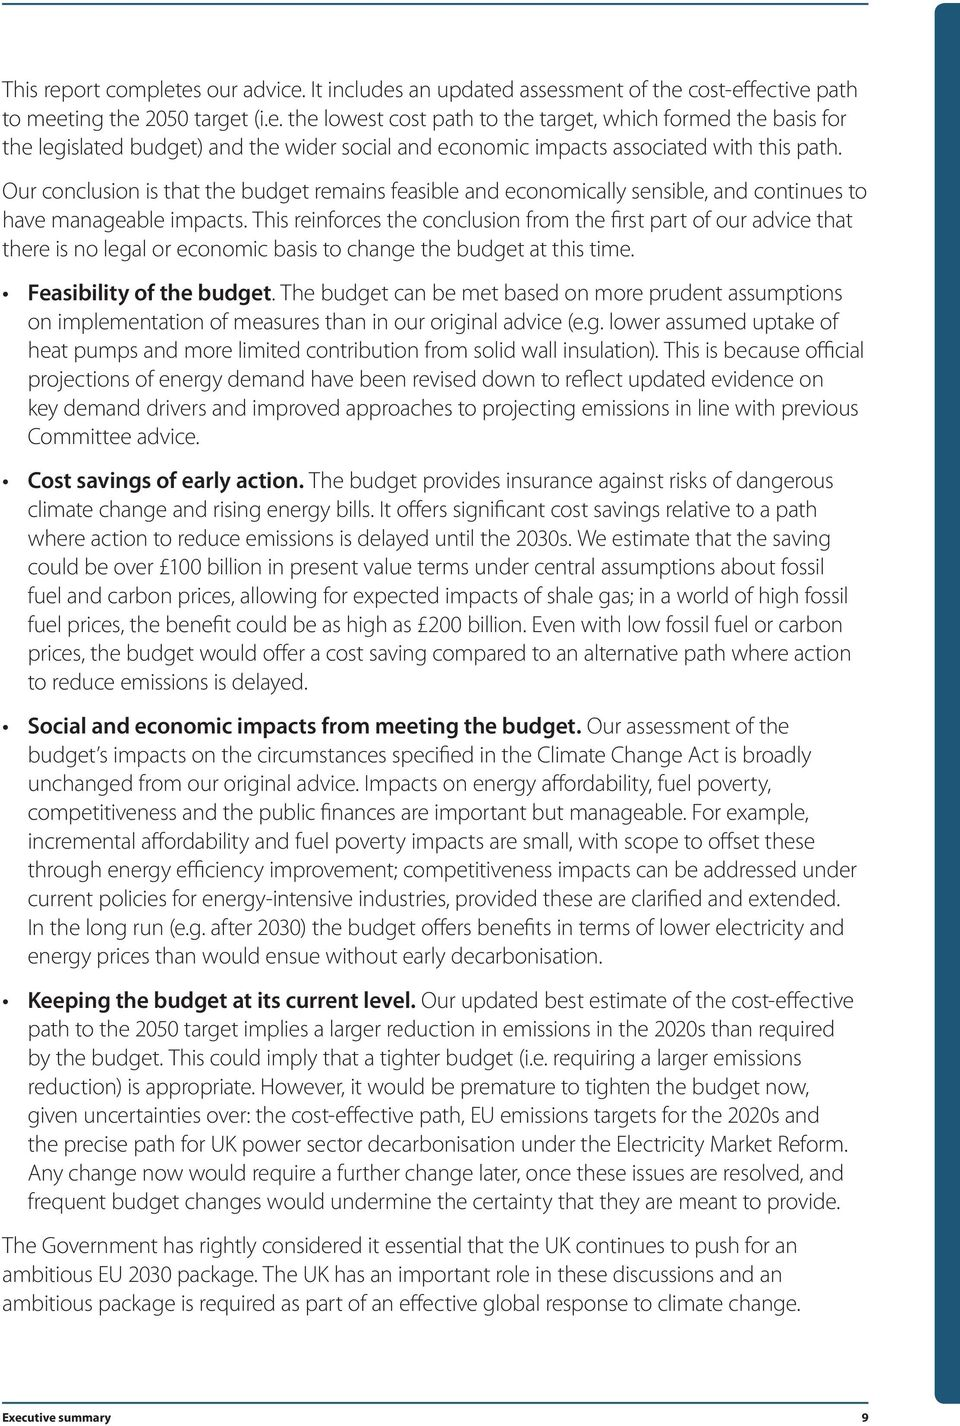 This reinforces the conclusion from the first part of our advice that there is no legal or economic basis to change the budget at this time. Feasibility of the budget.